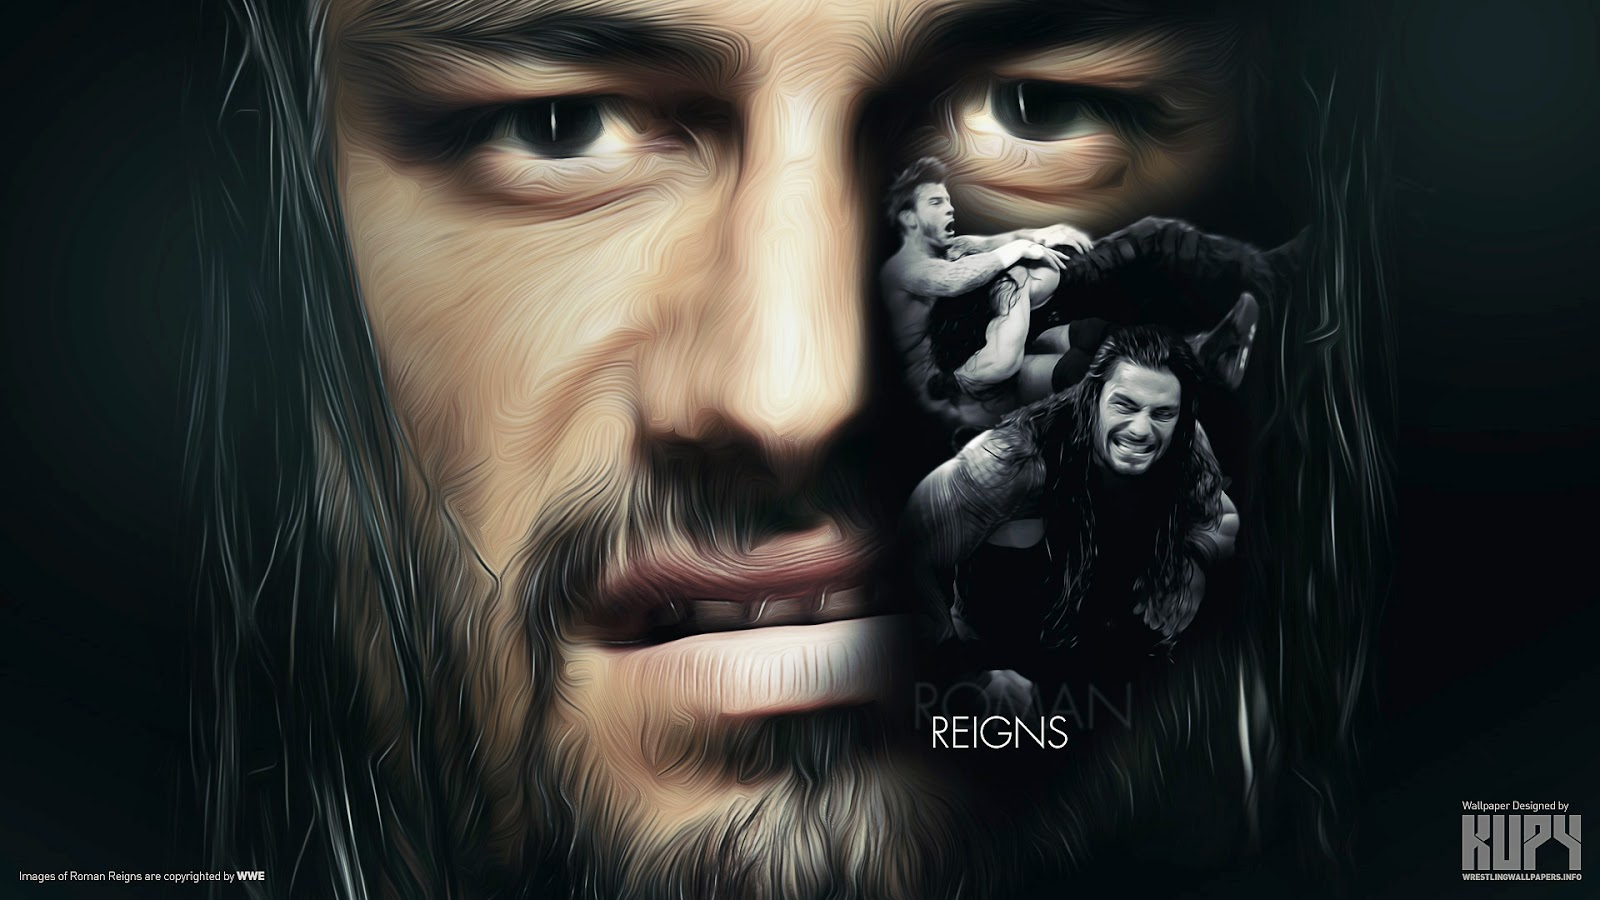 Roman Reigns Wwe New HD Wallpapers - Wallpapers